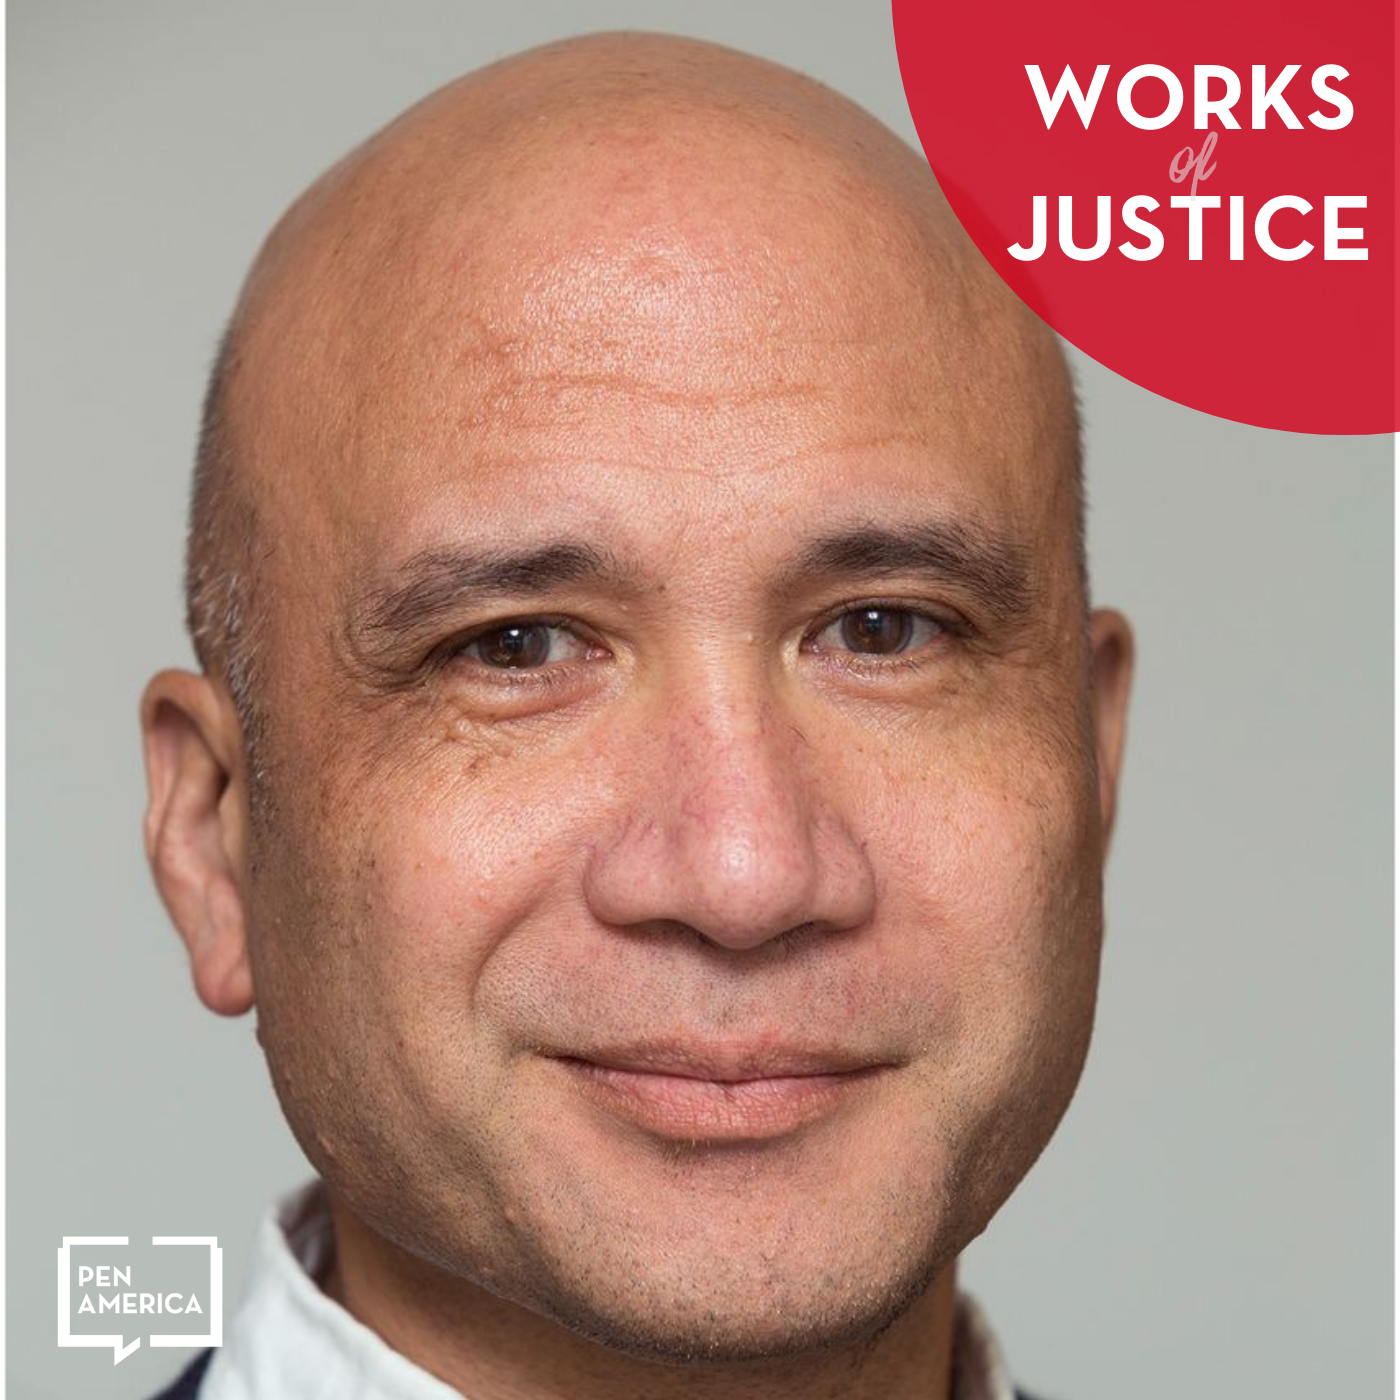 Works of Justice Graphic